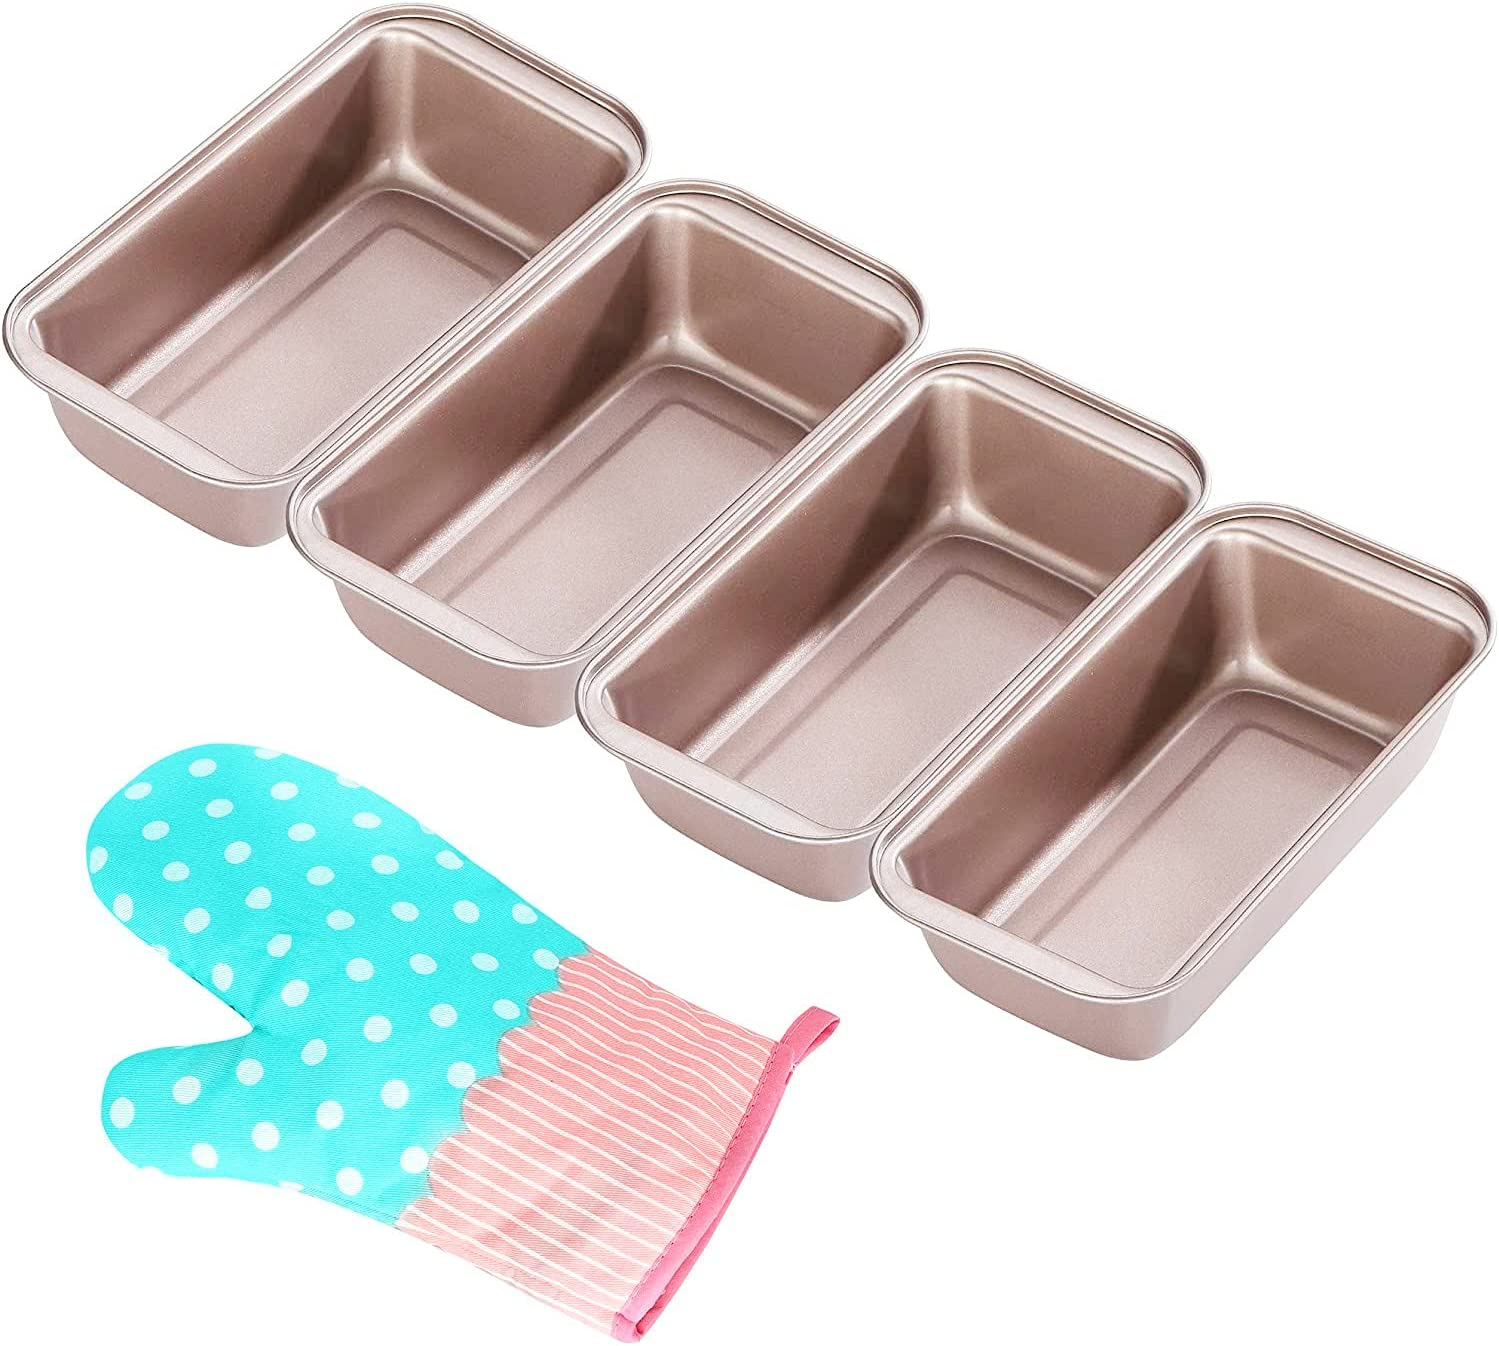 DOYOLLA Loaf Pan for Bread Baking, Set of 4 Non-stick Bread Toast Box Bakeware & Oven Mitt For Professional & Home Bakers - Gold/0.99 Lb Capacity